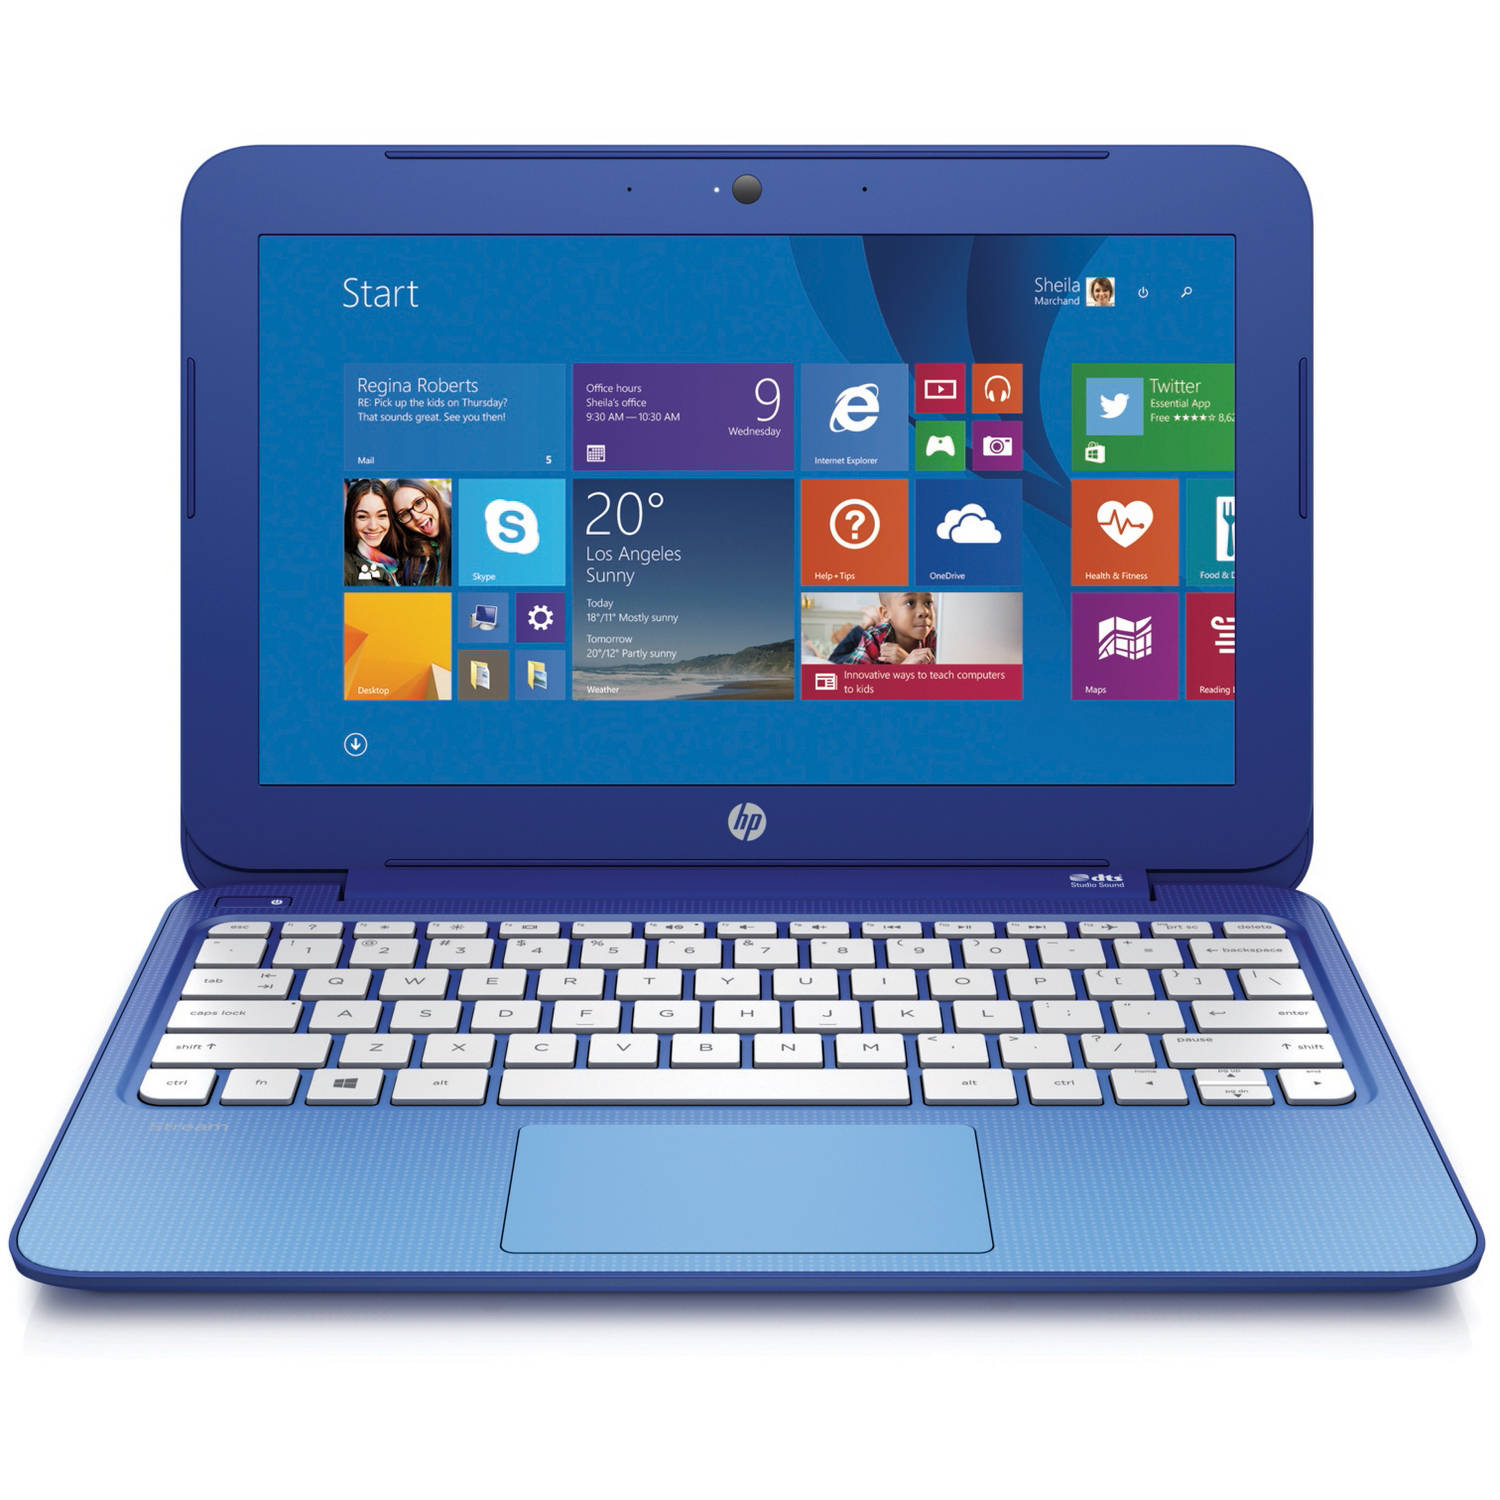 "Refurbished HP Horizon Blue 11.6"" Stream 11-d010wm Laptop PC with Intel Celeron N2840 Processor, 2GB Memory, 32GB Hard Drive and Windows 8.1"